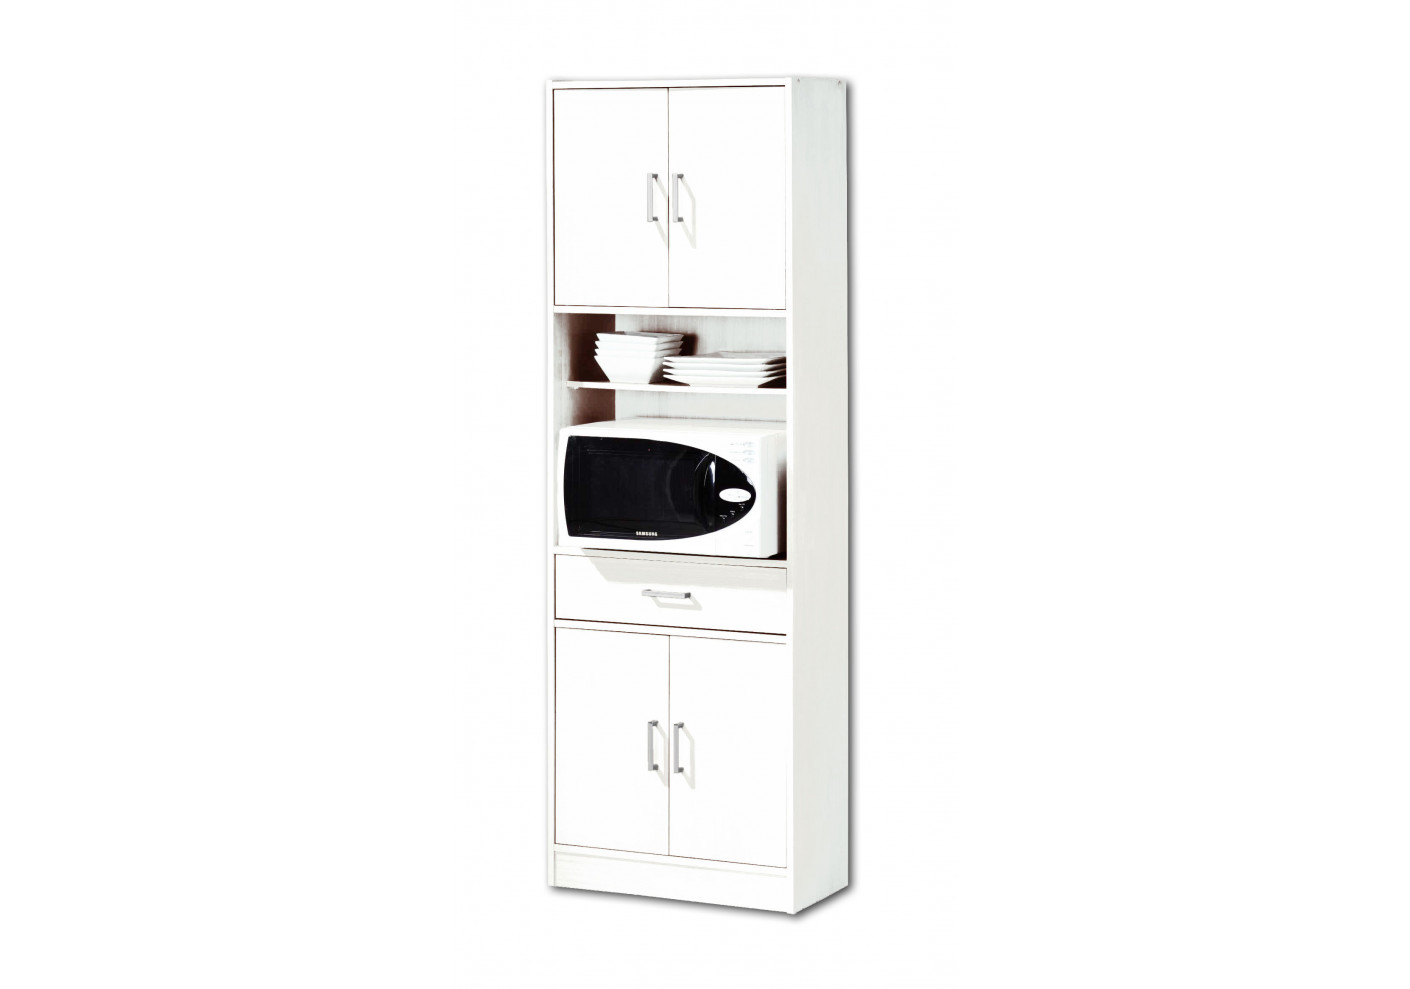 colonne de cuisine montblanc blanc. Black Bedroom Furniture Sets. Home Design Ideas